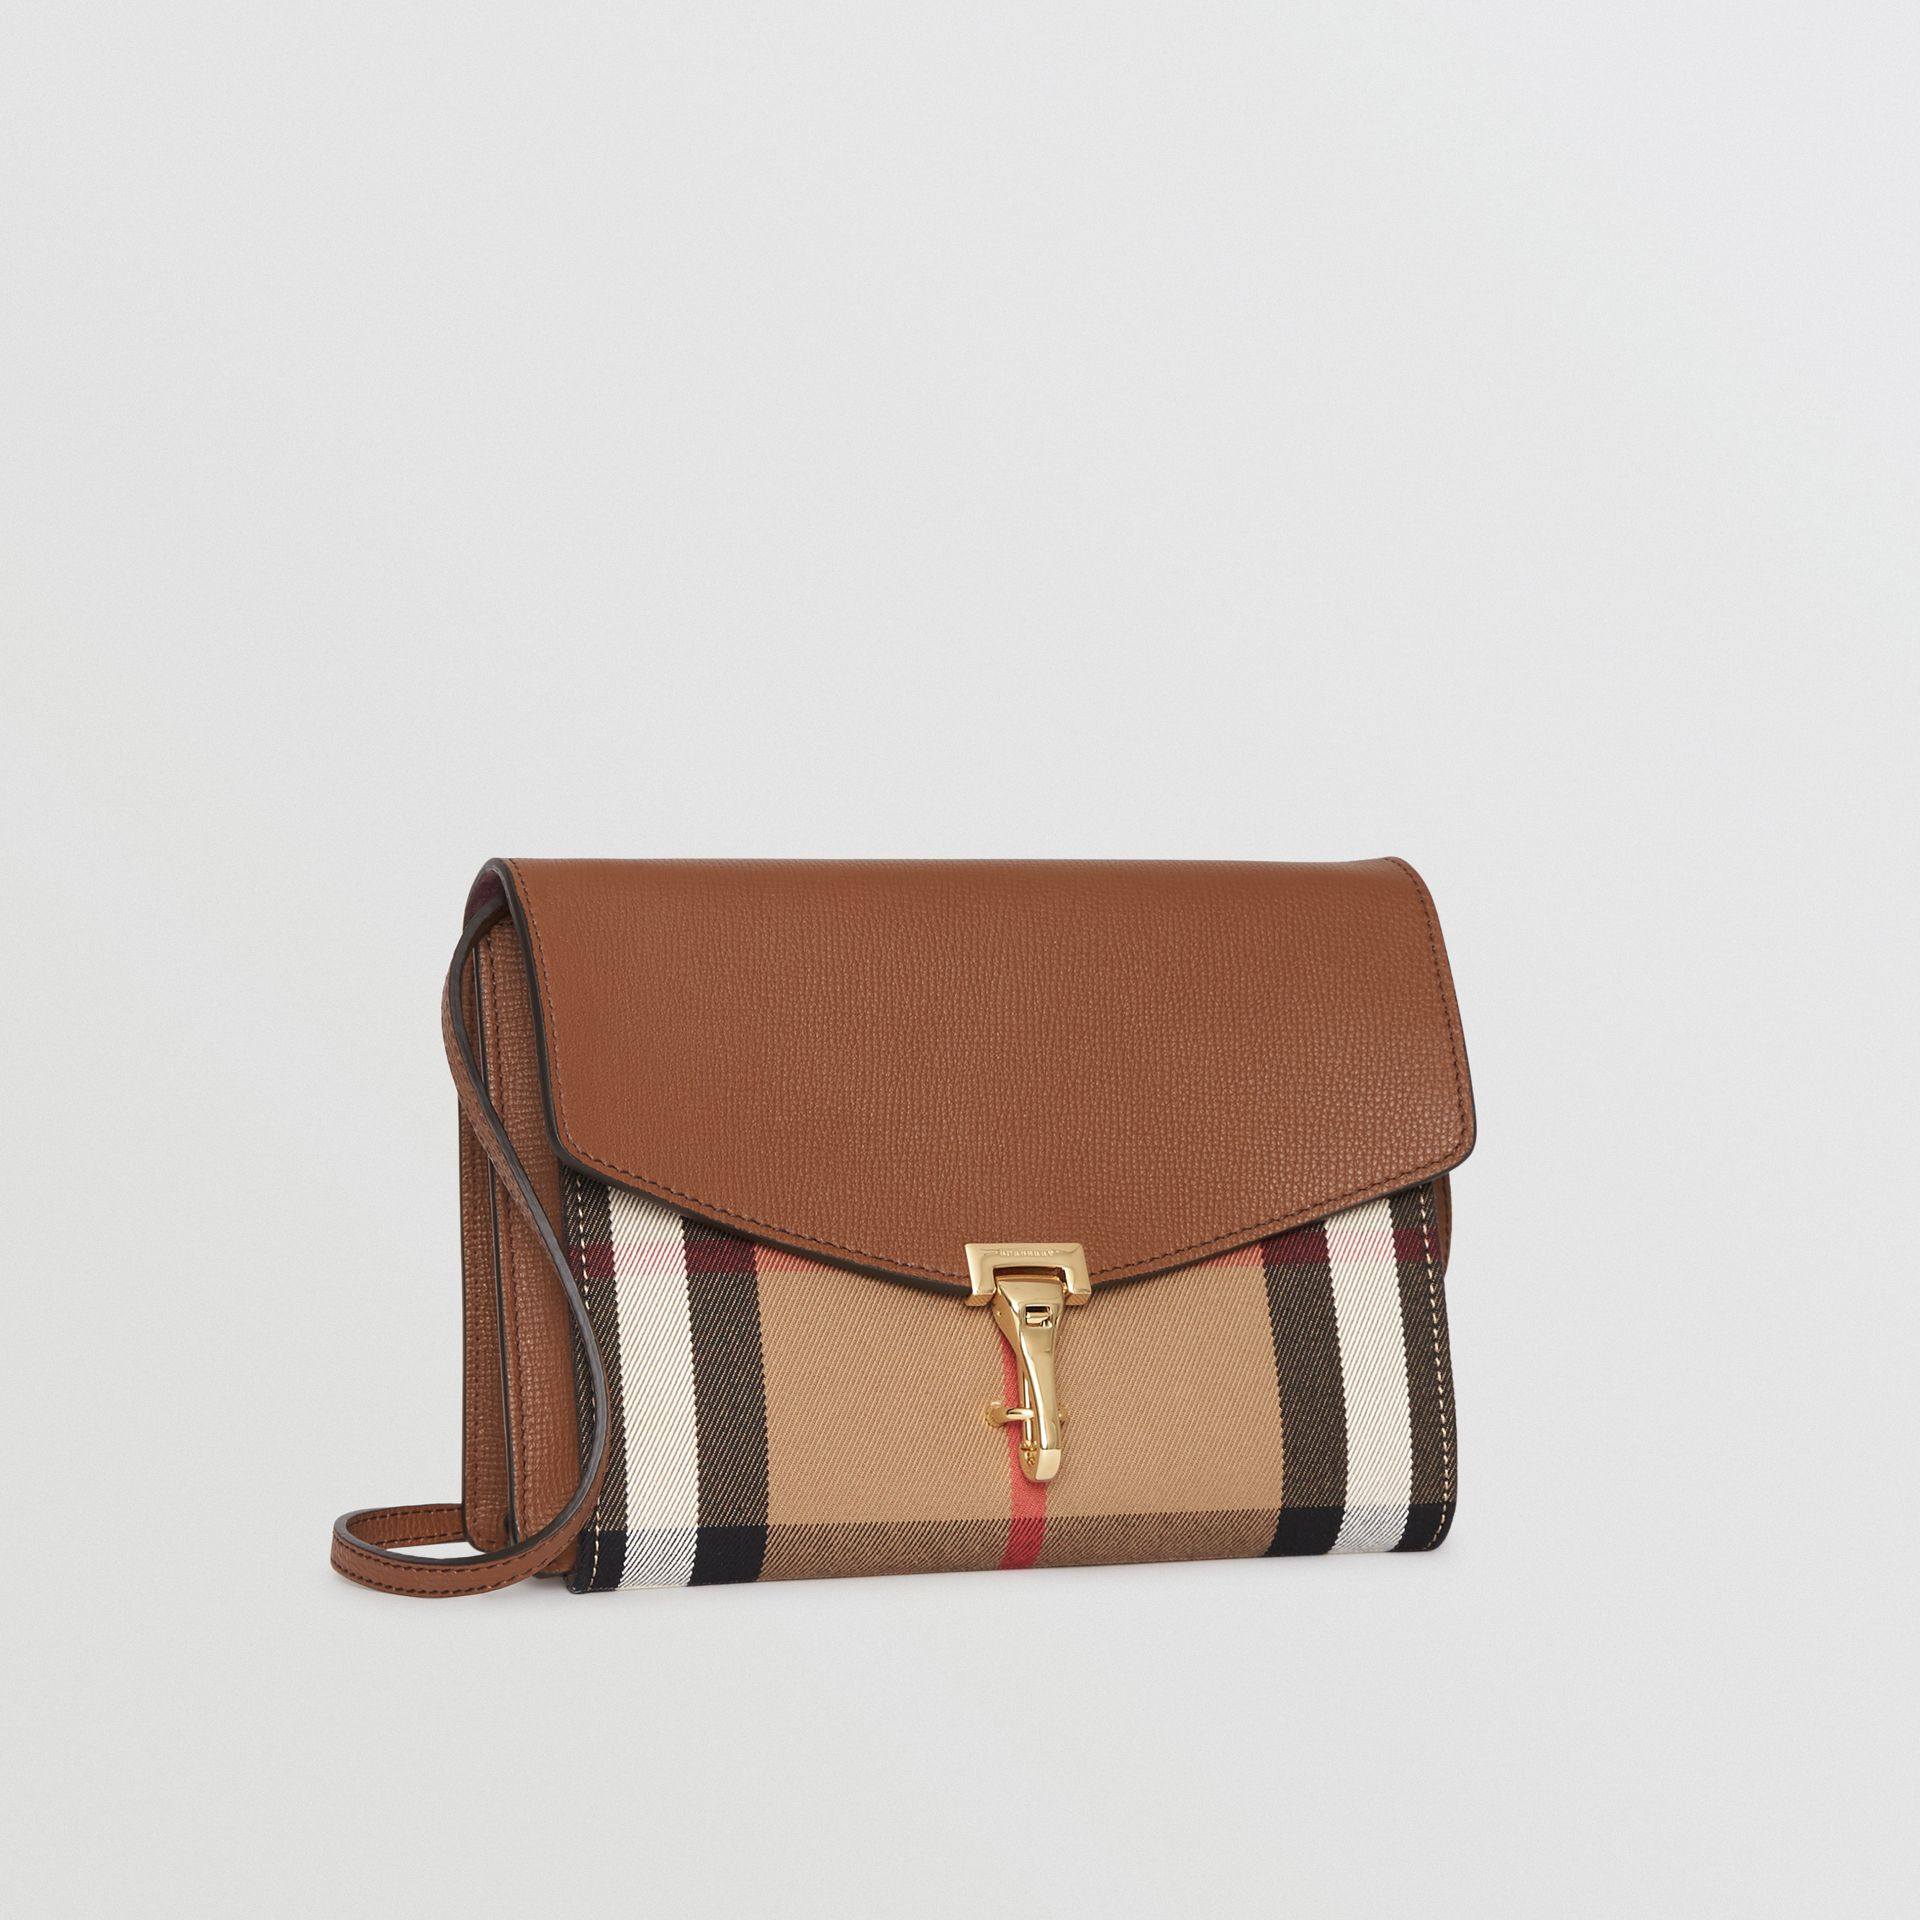 Small Leather and House Check Crossbody Bag in Tan - Women | Burberry Hong Kong - gallery image 6